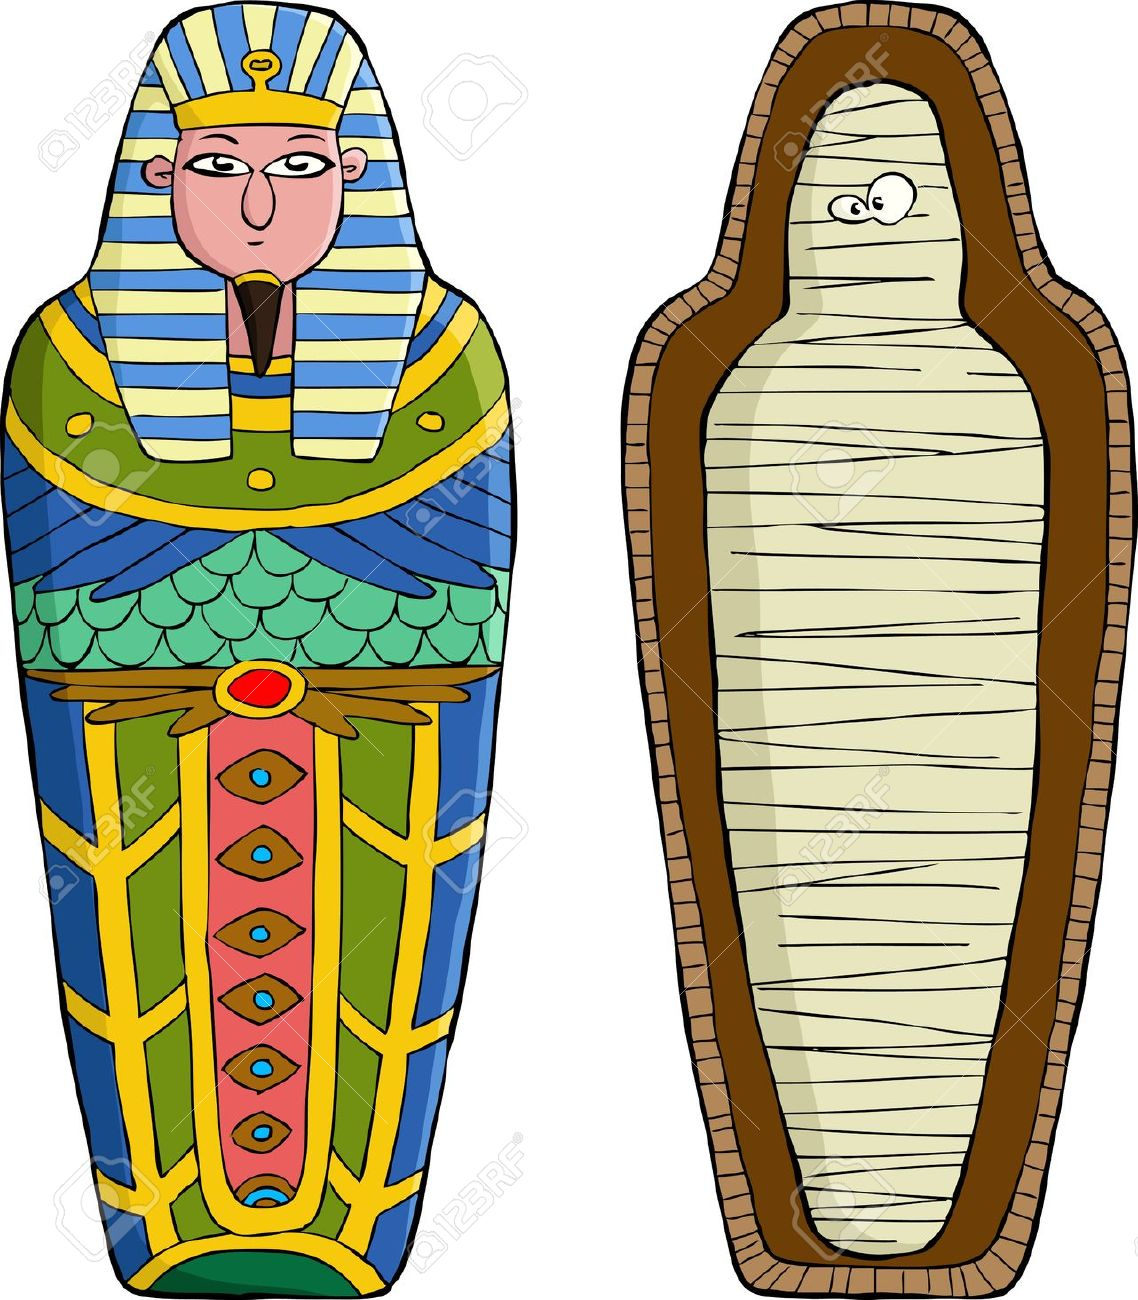 Mummy clipart mummy case. Free cliparts download clip